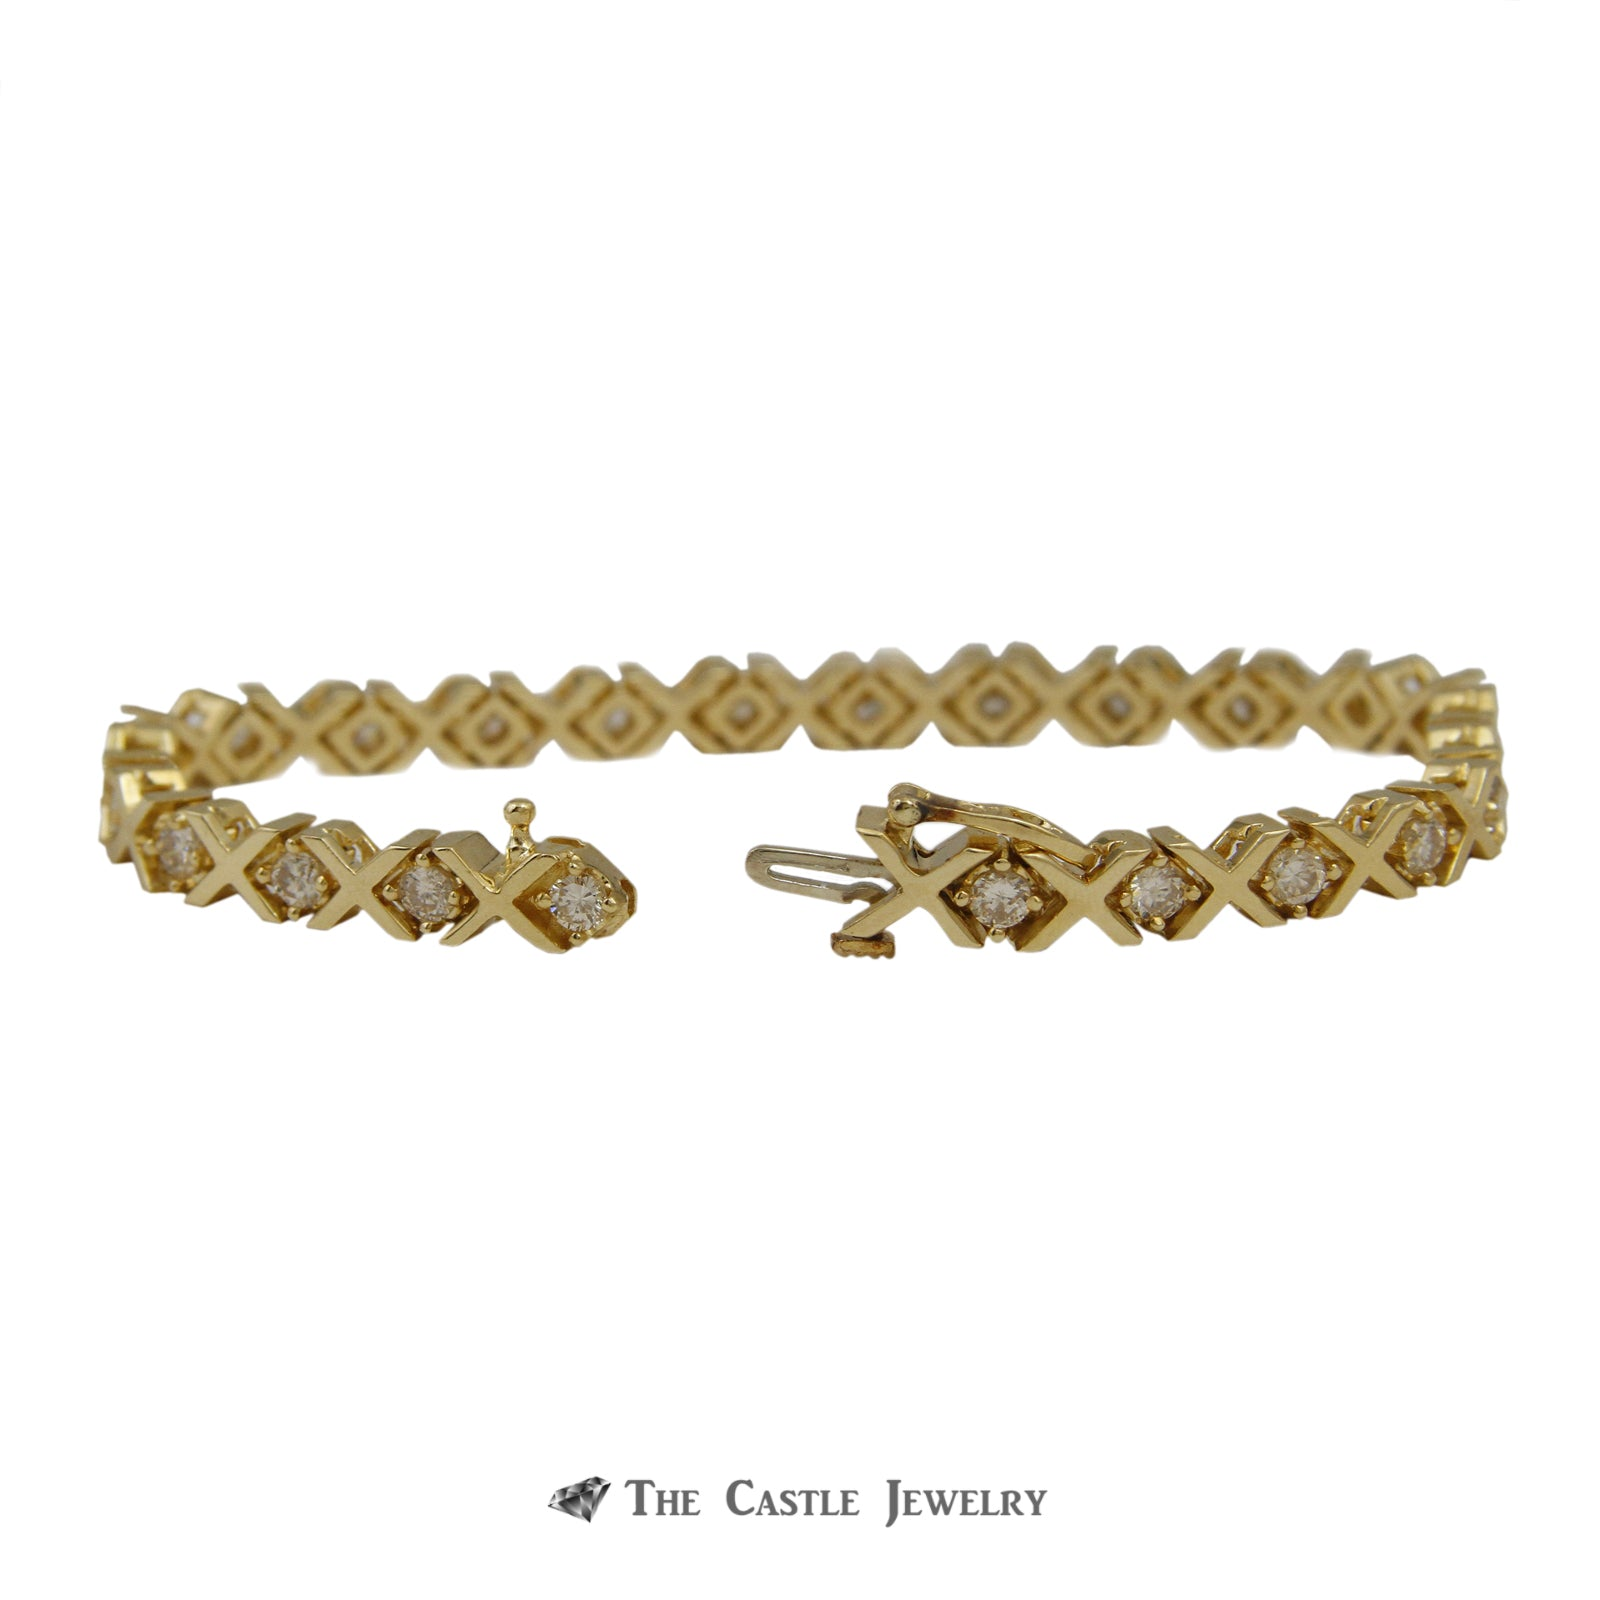 Unique X Link 2.5cttw Diamond Tennis Bracelet in 14K Yellow Gold-1